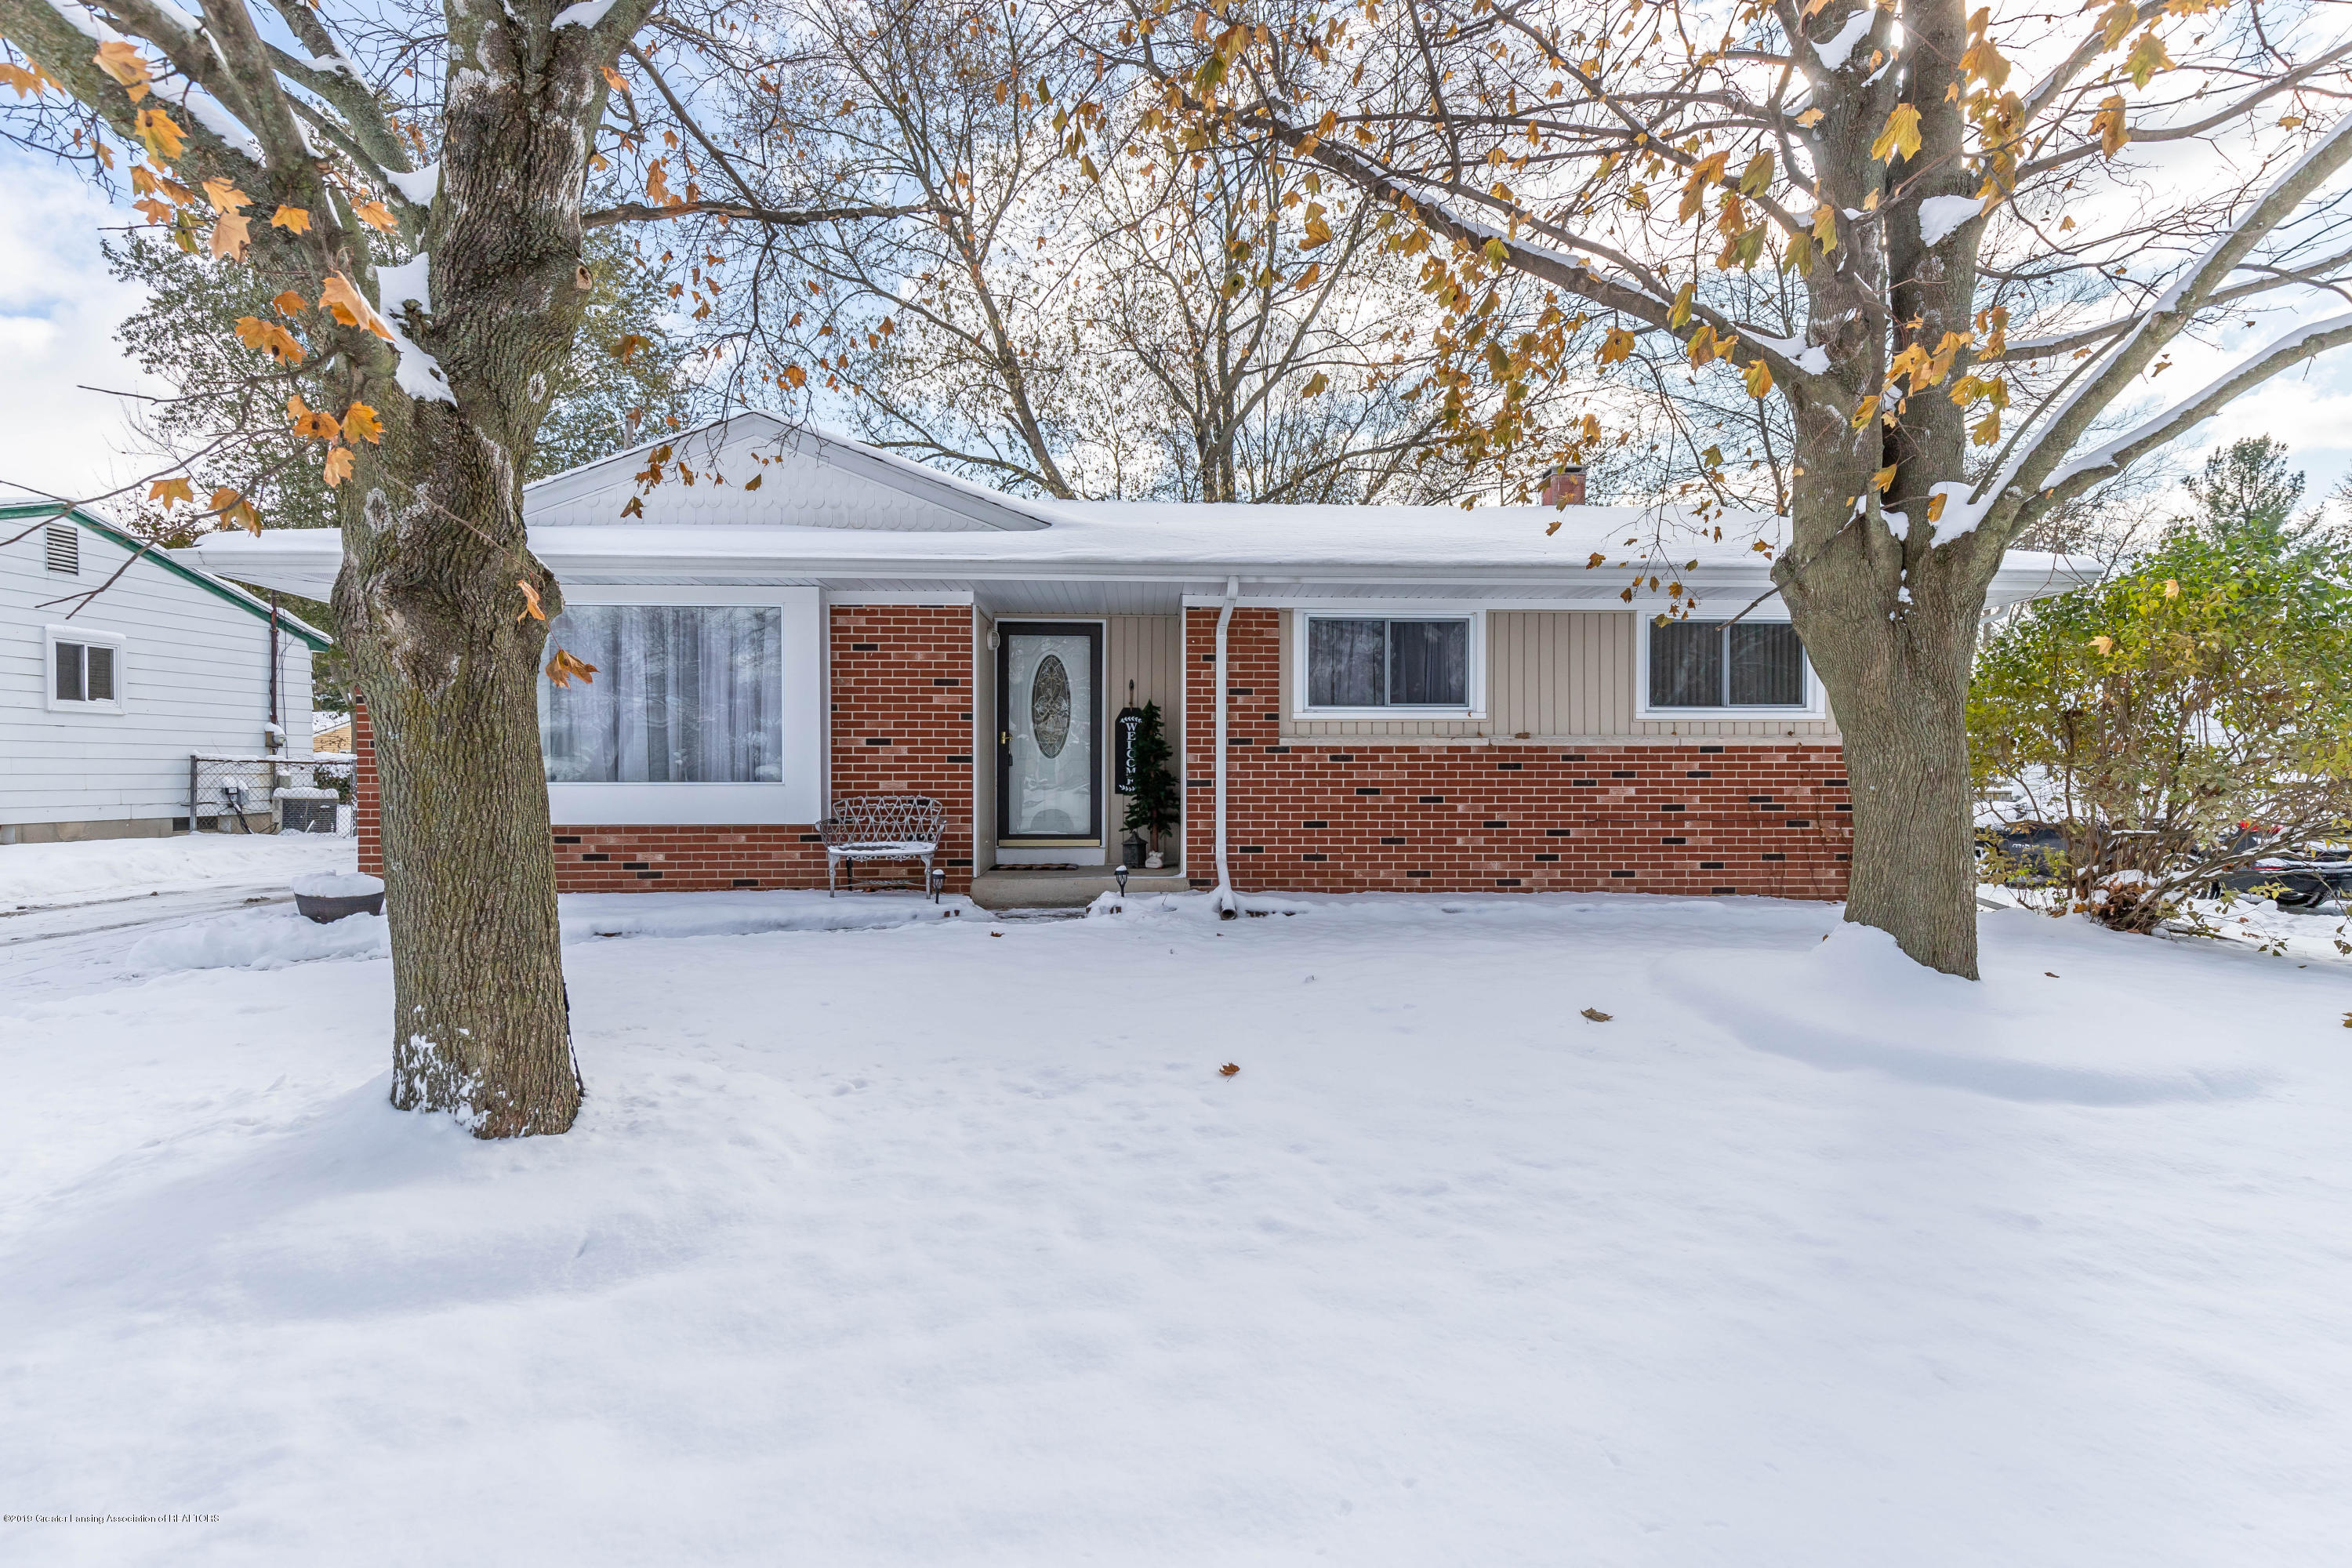 4385 Doncaster Ave - doncasterfront2 (1 of 1) - 1